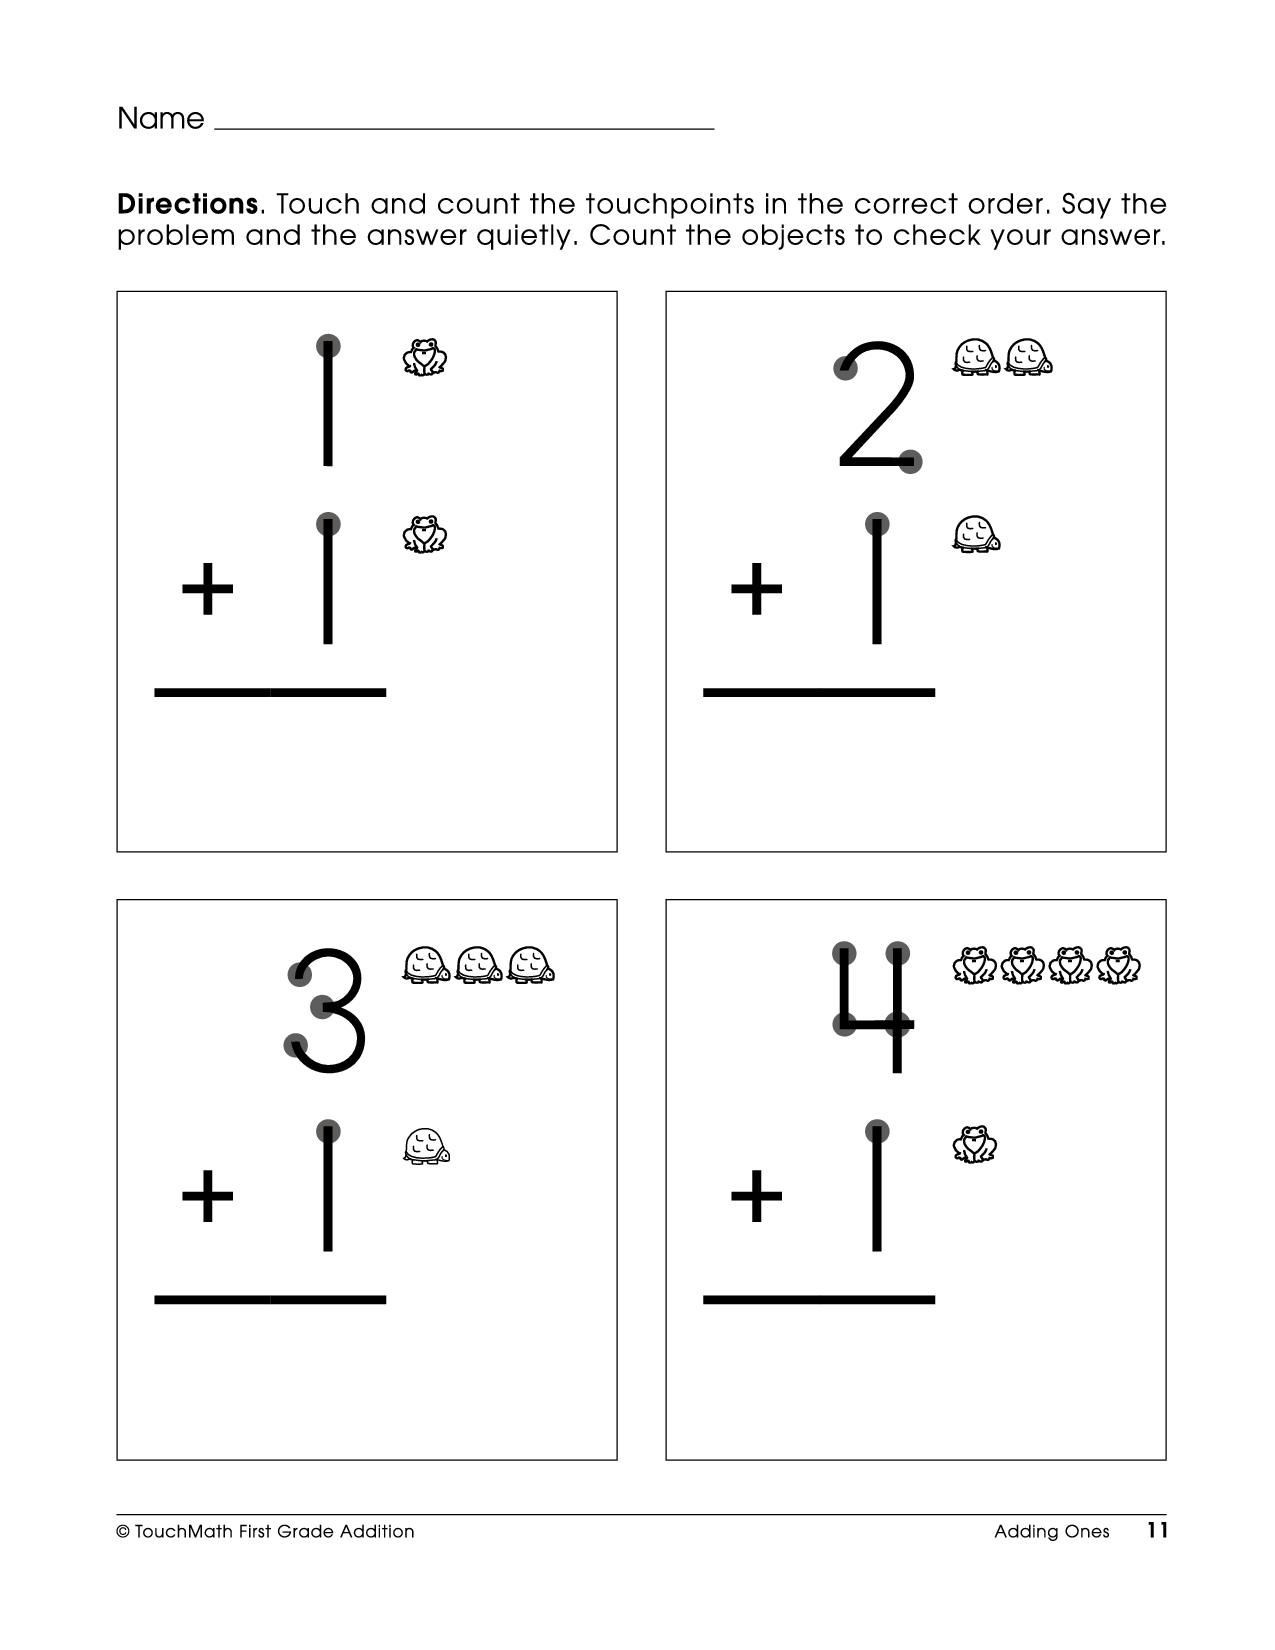 Touch Math Subtraction Worksheets Free Printable touchpoint Math Worksheets